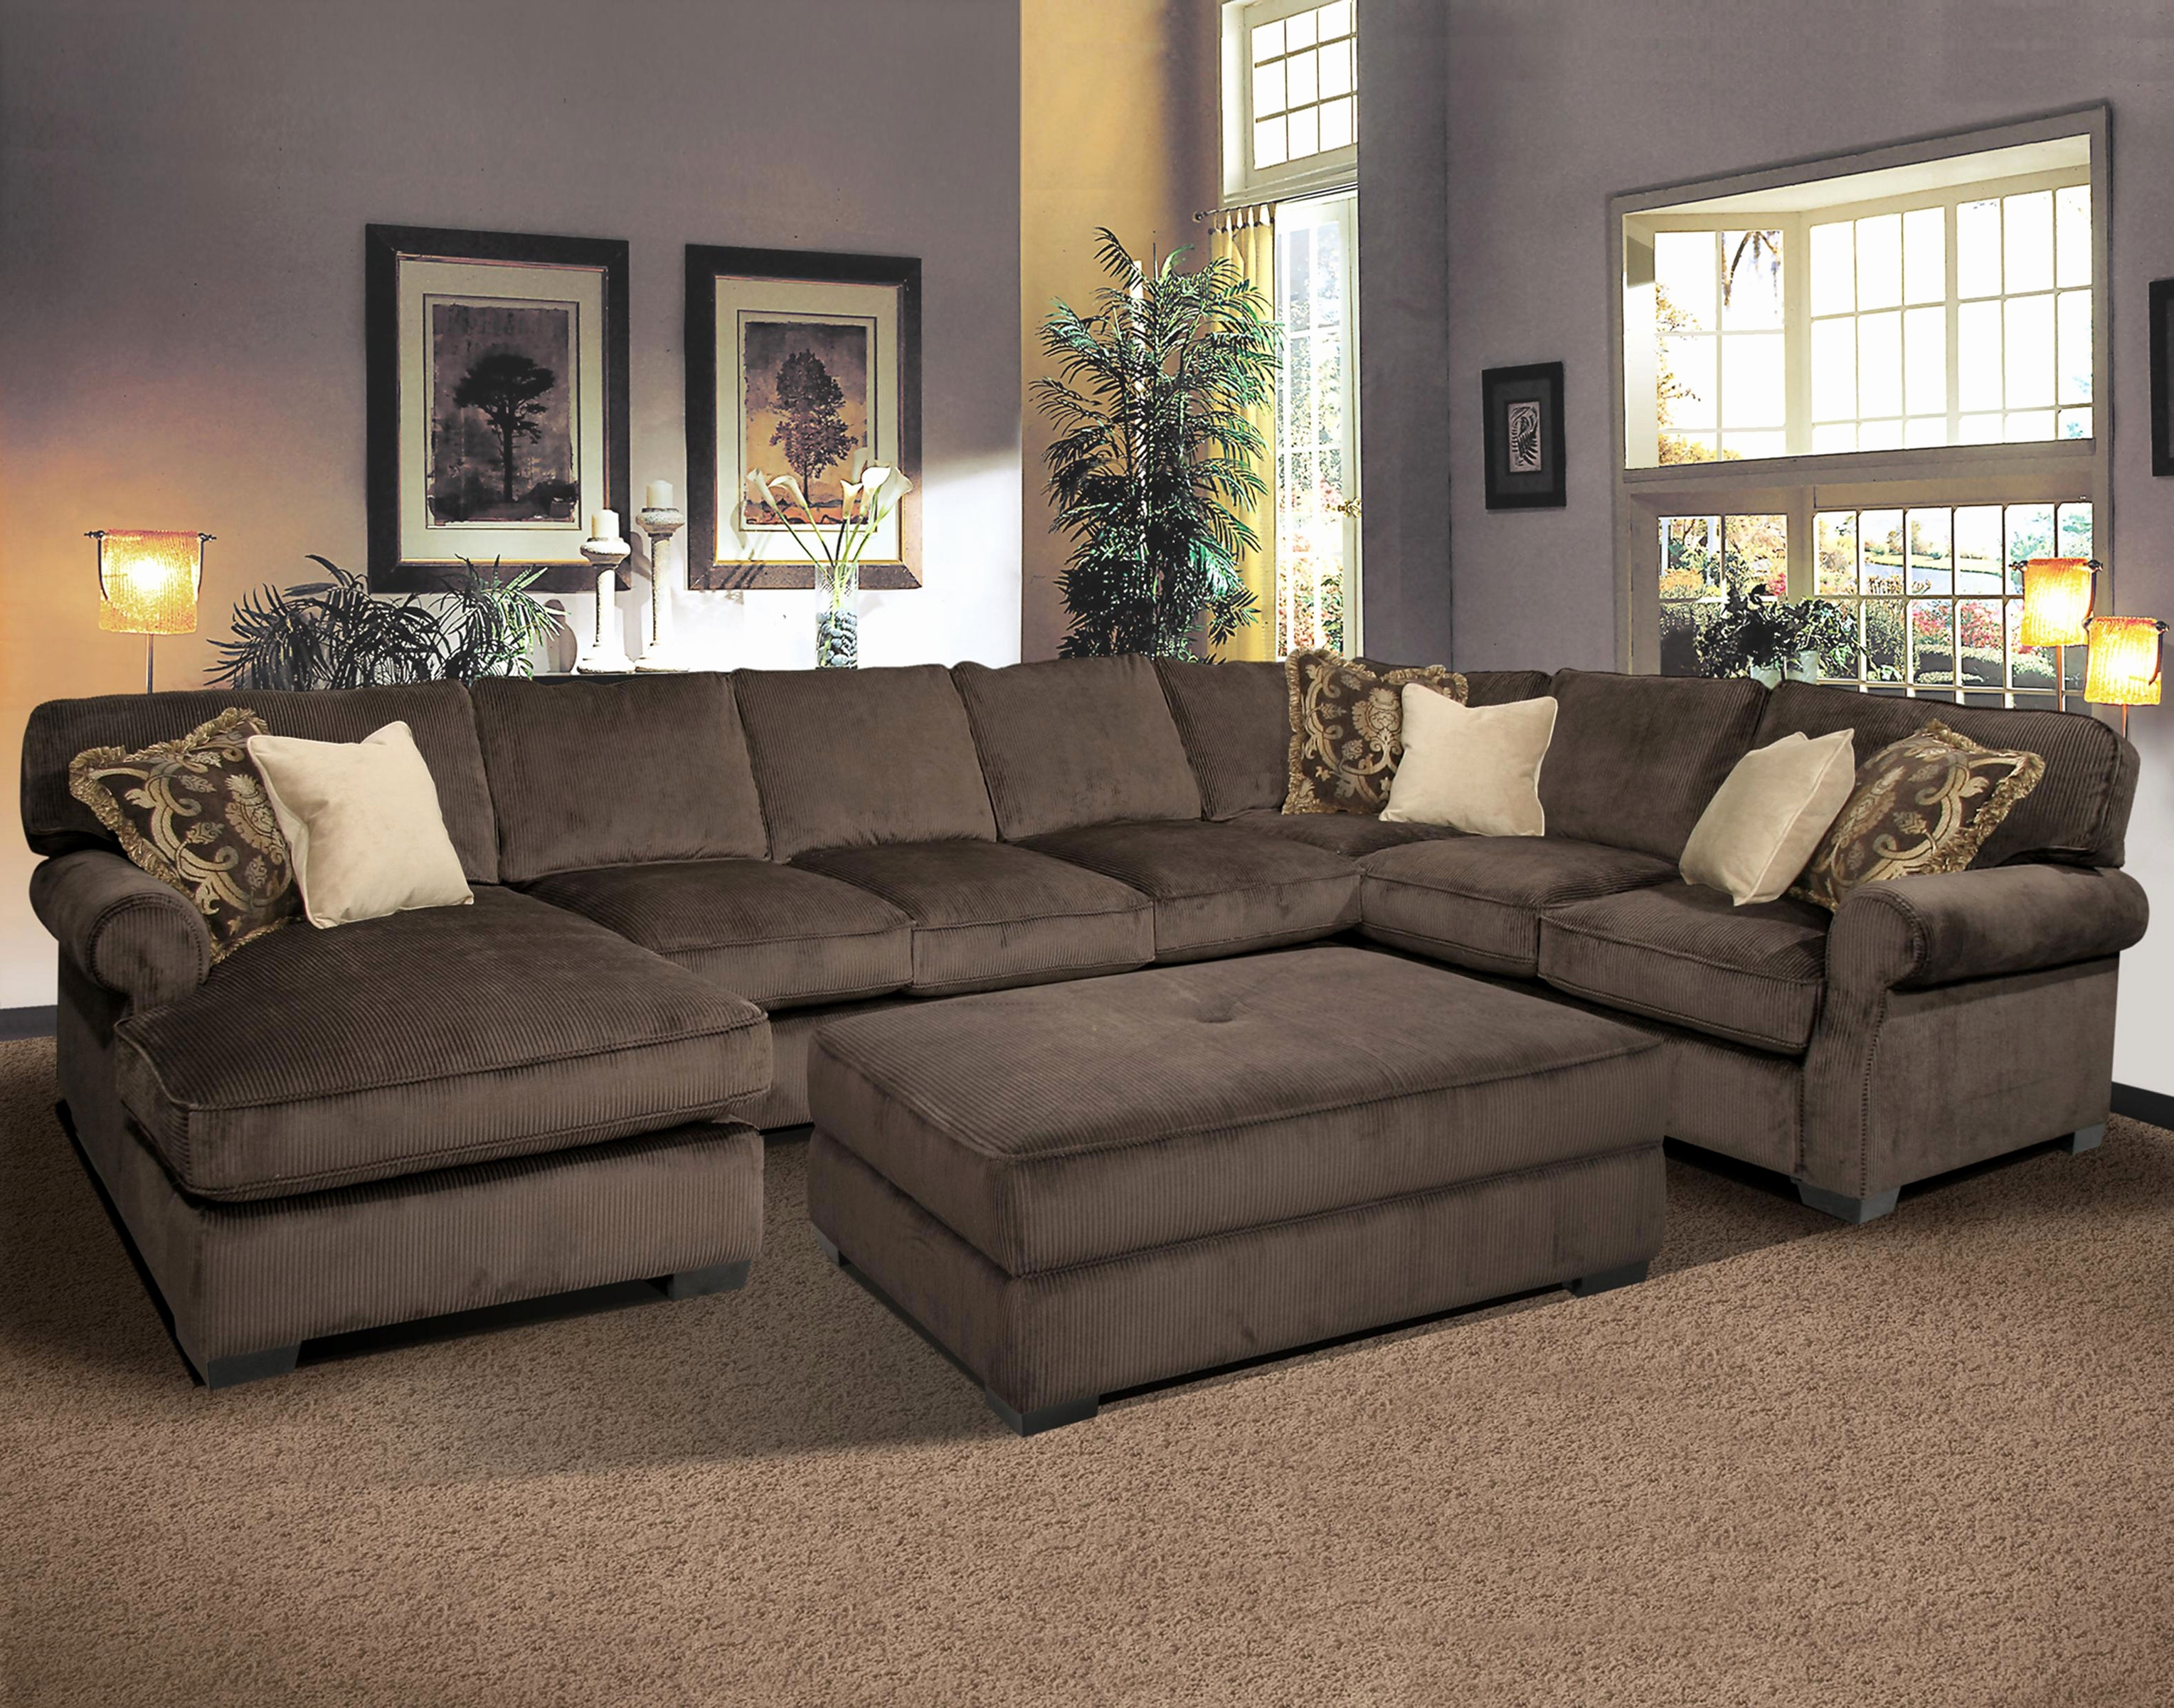 Cheap Furniture Tulsa Luxury Sectional Sofa Sectional Sofas Tulsa Within Tulsa Sectional Sofas (Image 1 of 10)